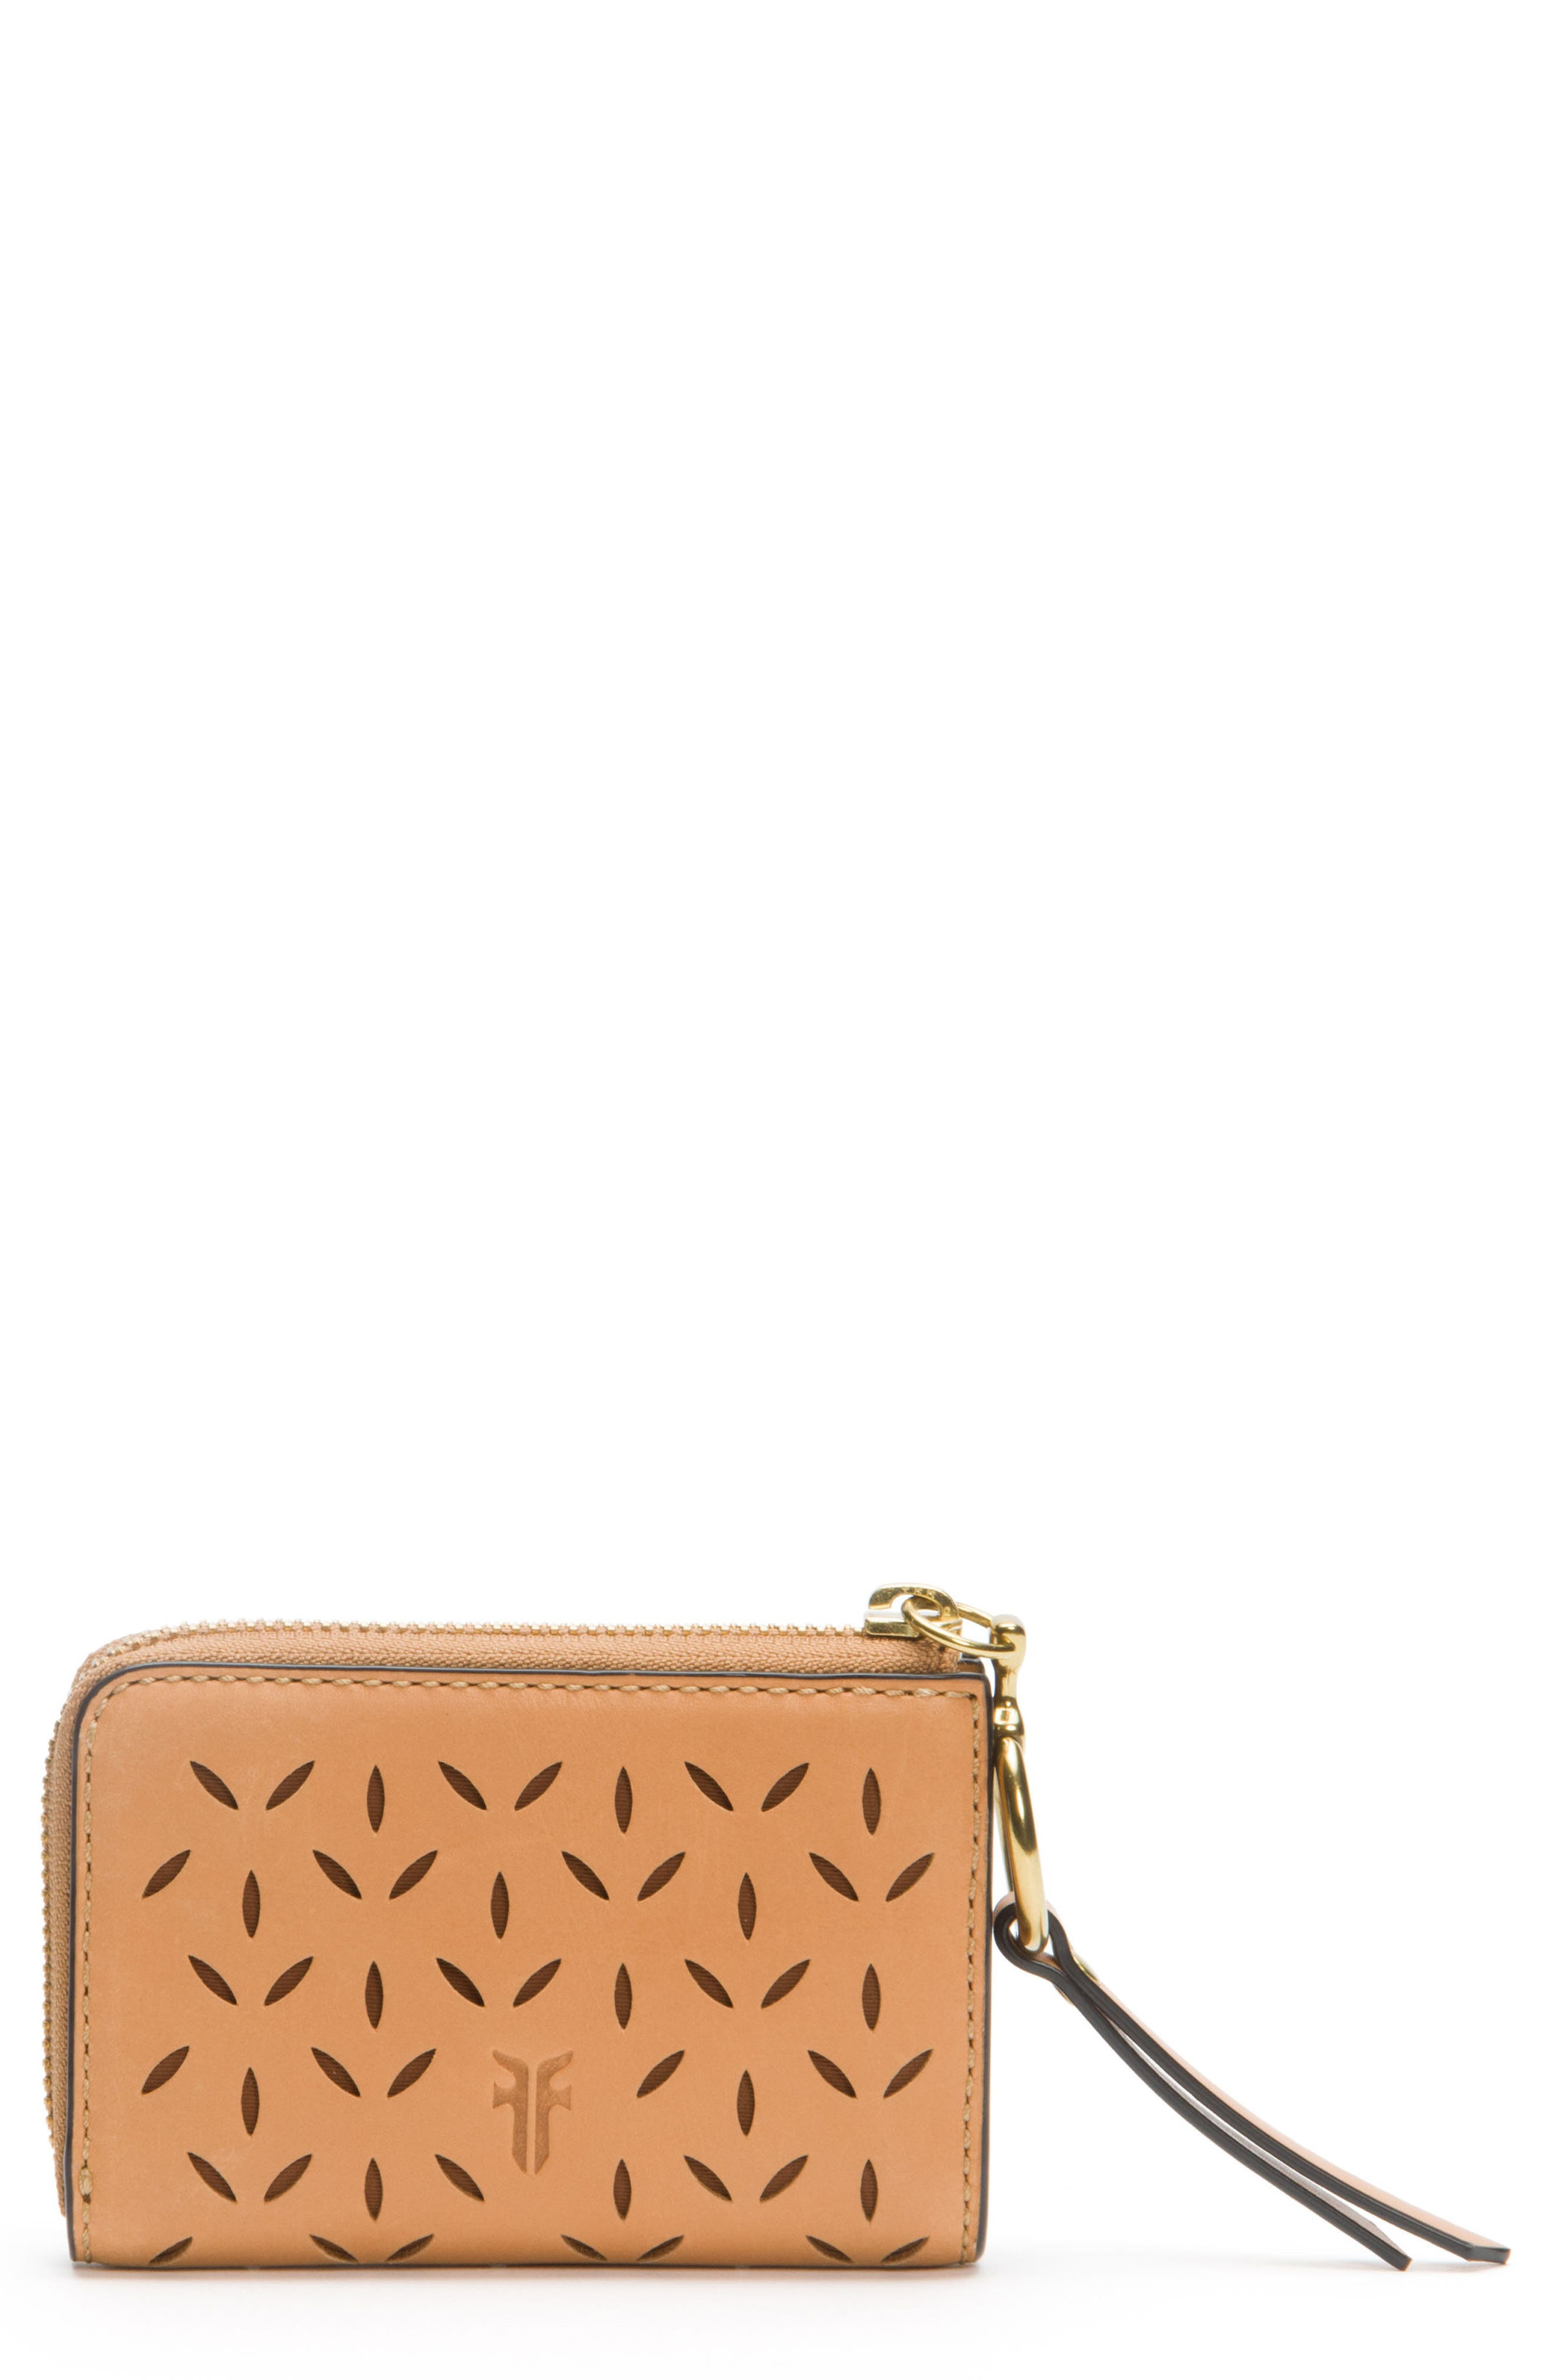 Ilana Small Perforated Leather Zip Wallet,                             Main thumbnail 1, color,                             Light Tan